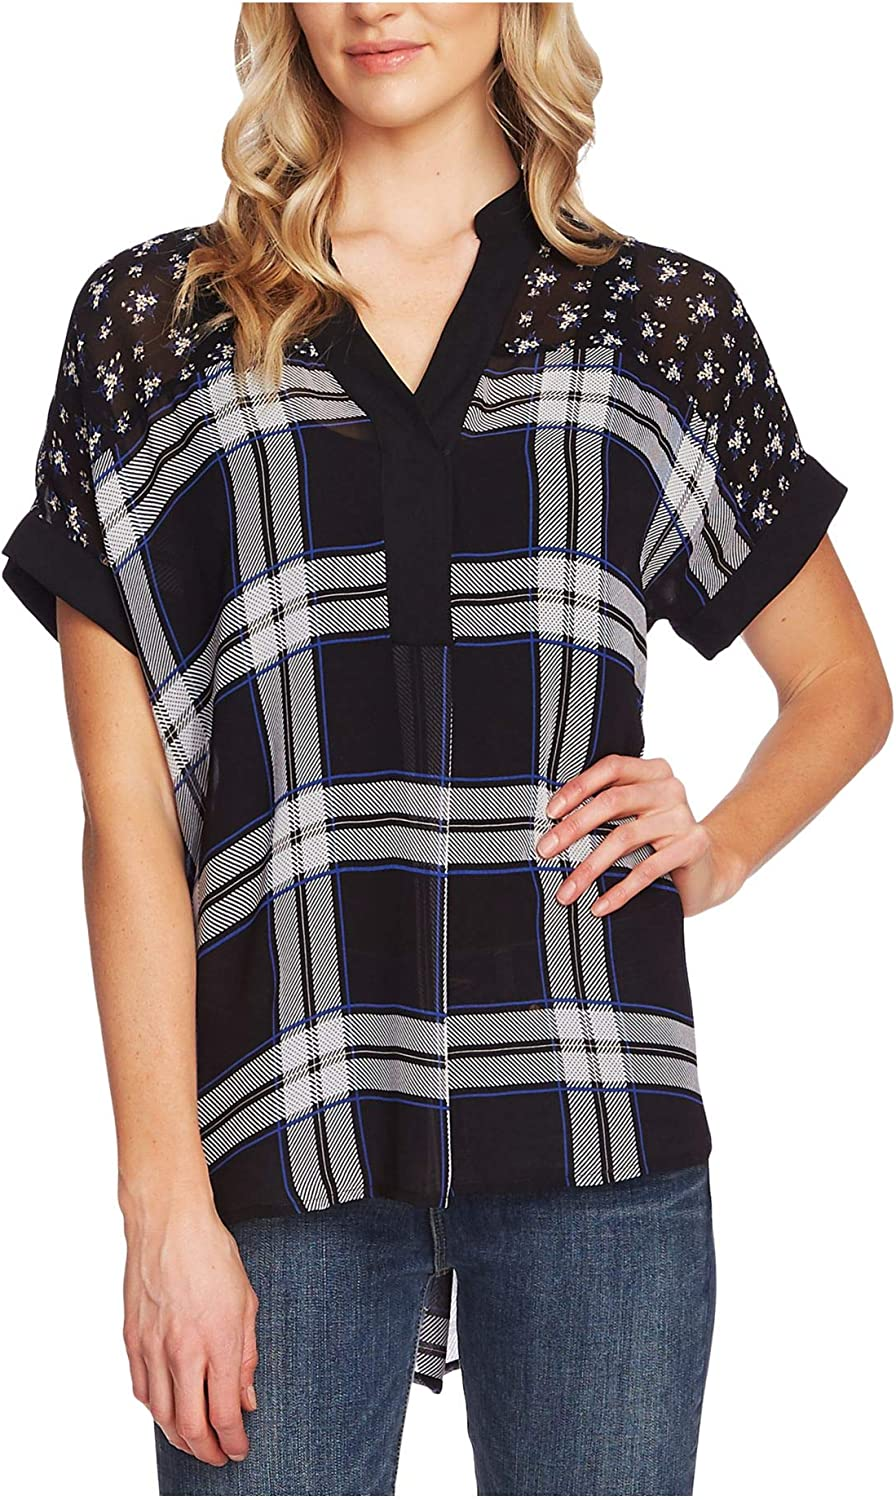 Vince Camuto Women's Dolman Max 56% OFF Blouse Sleeve Print Mixed Fees free!!